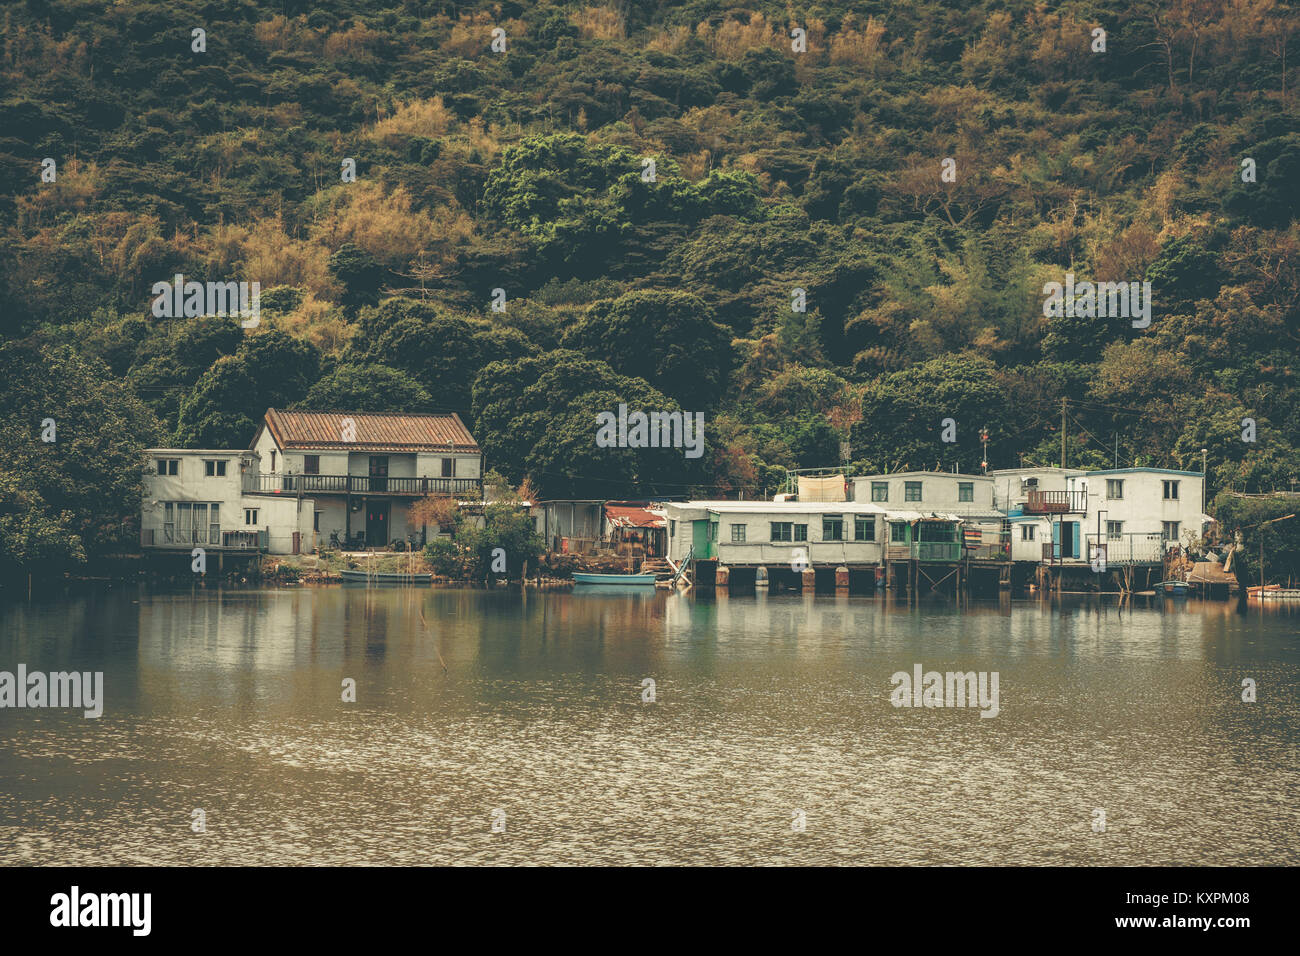 Village setting on Lantau Island, away from the hustle and bustle in the city of Hong Kong. - Stock Image